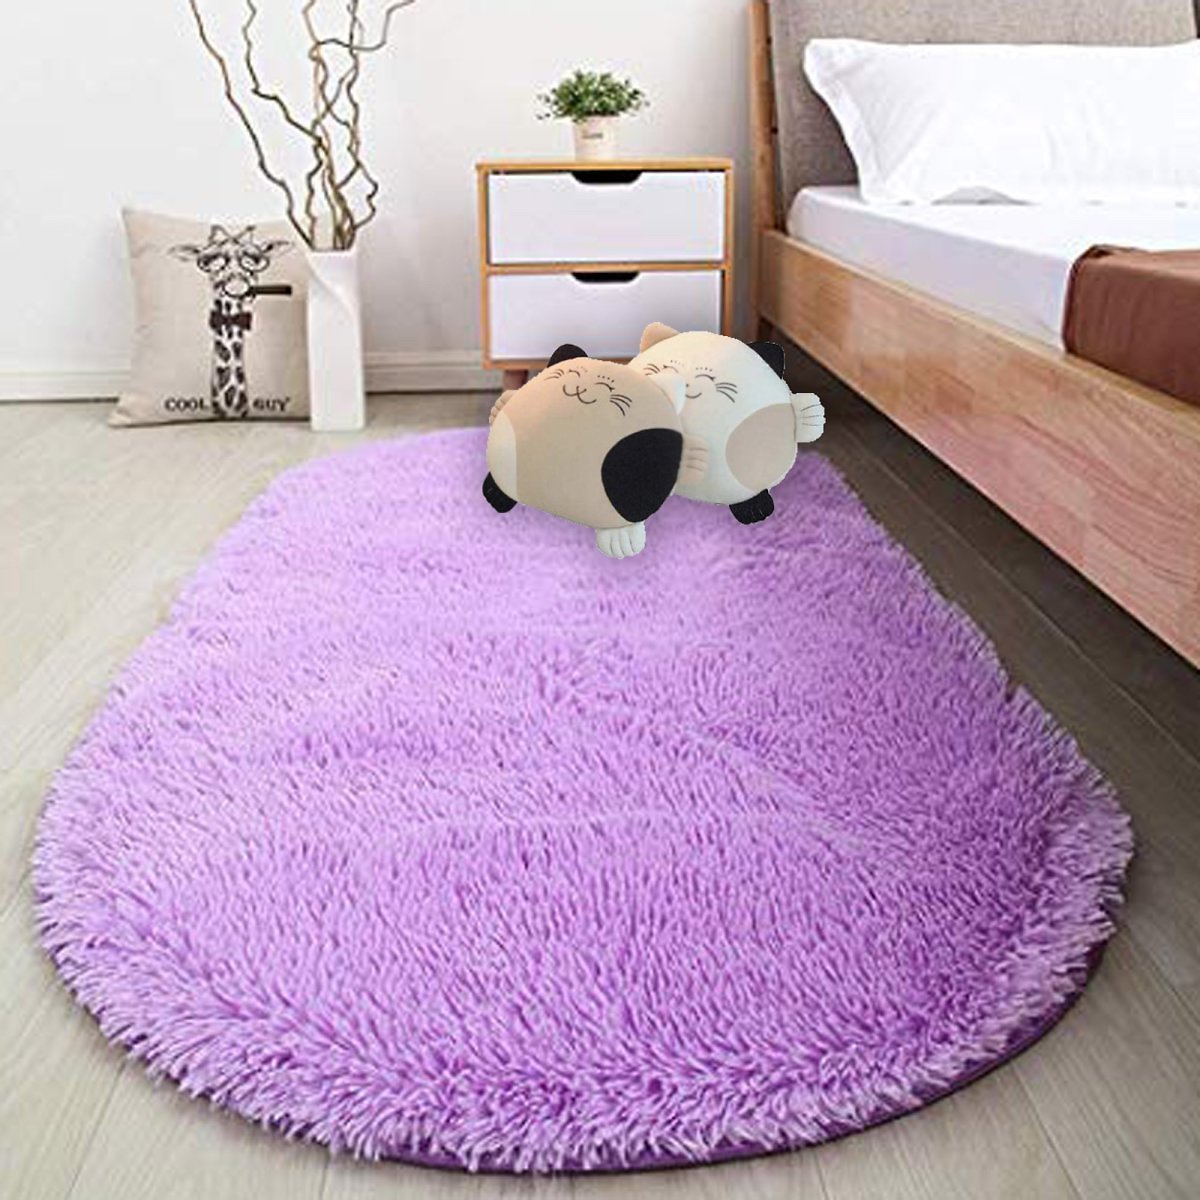 NK-HOME-31-4-x-64-9-inches-80-165cm-Fluffy-Area-Rugs-Bedroom-Oval-Shaggy-Floor-Carpet-Cute-Rug-Girls-